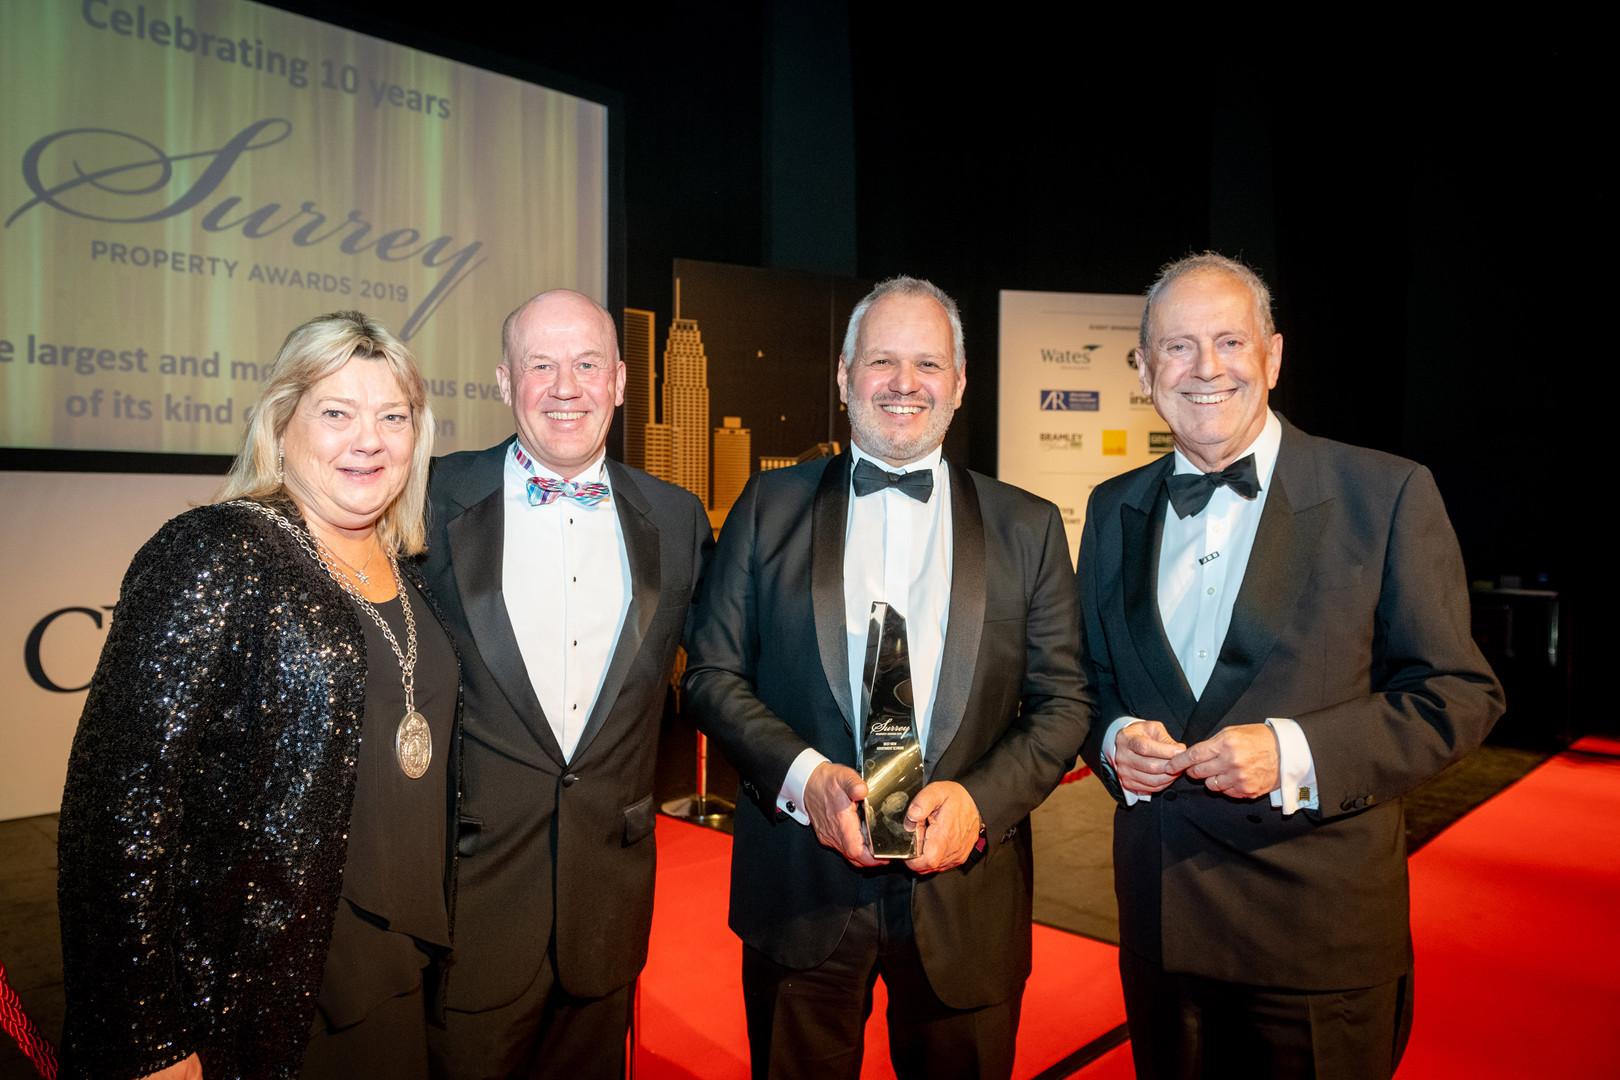 SurreyPropertyAwards_Nov2019_385.jpg